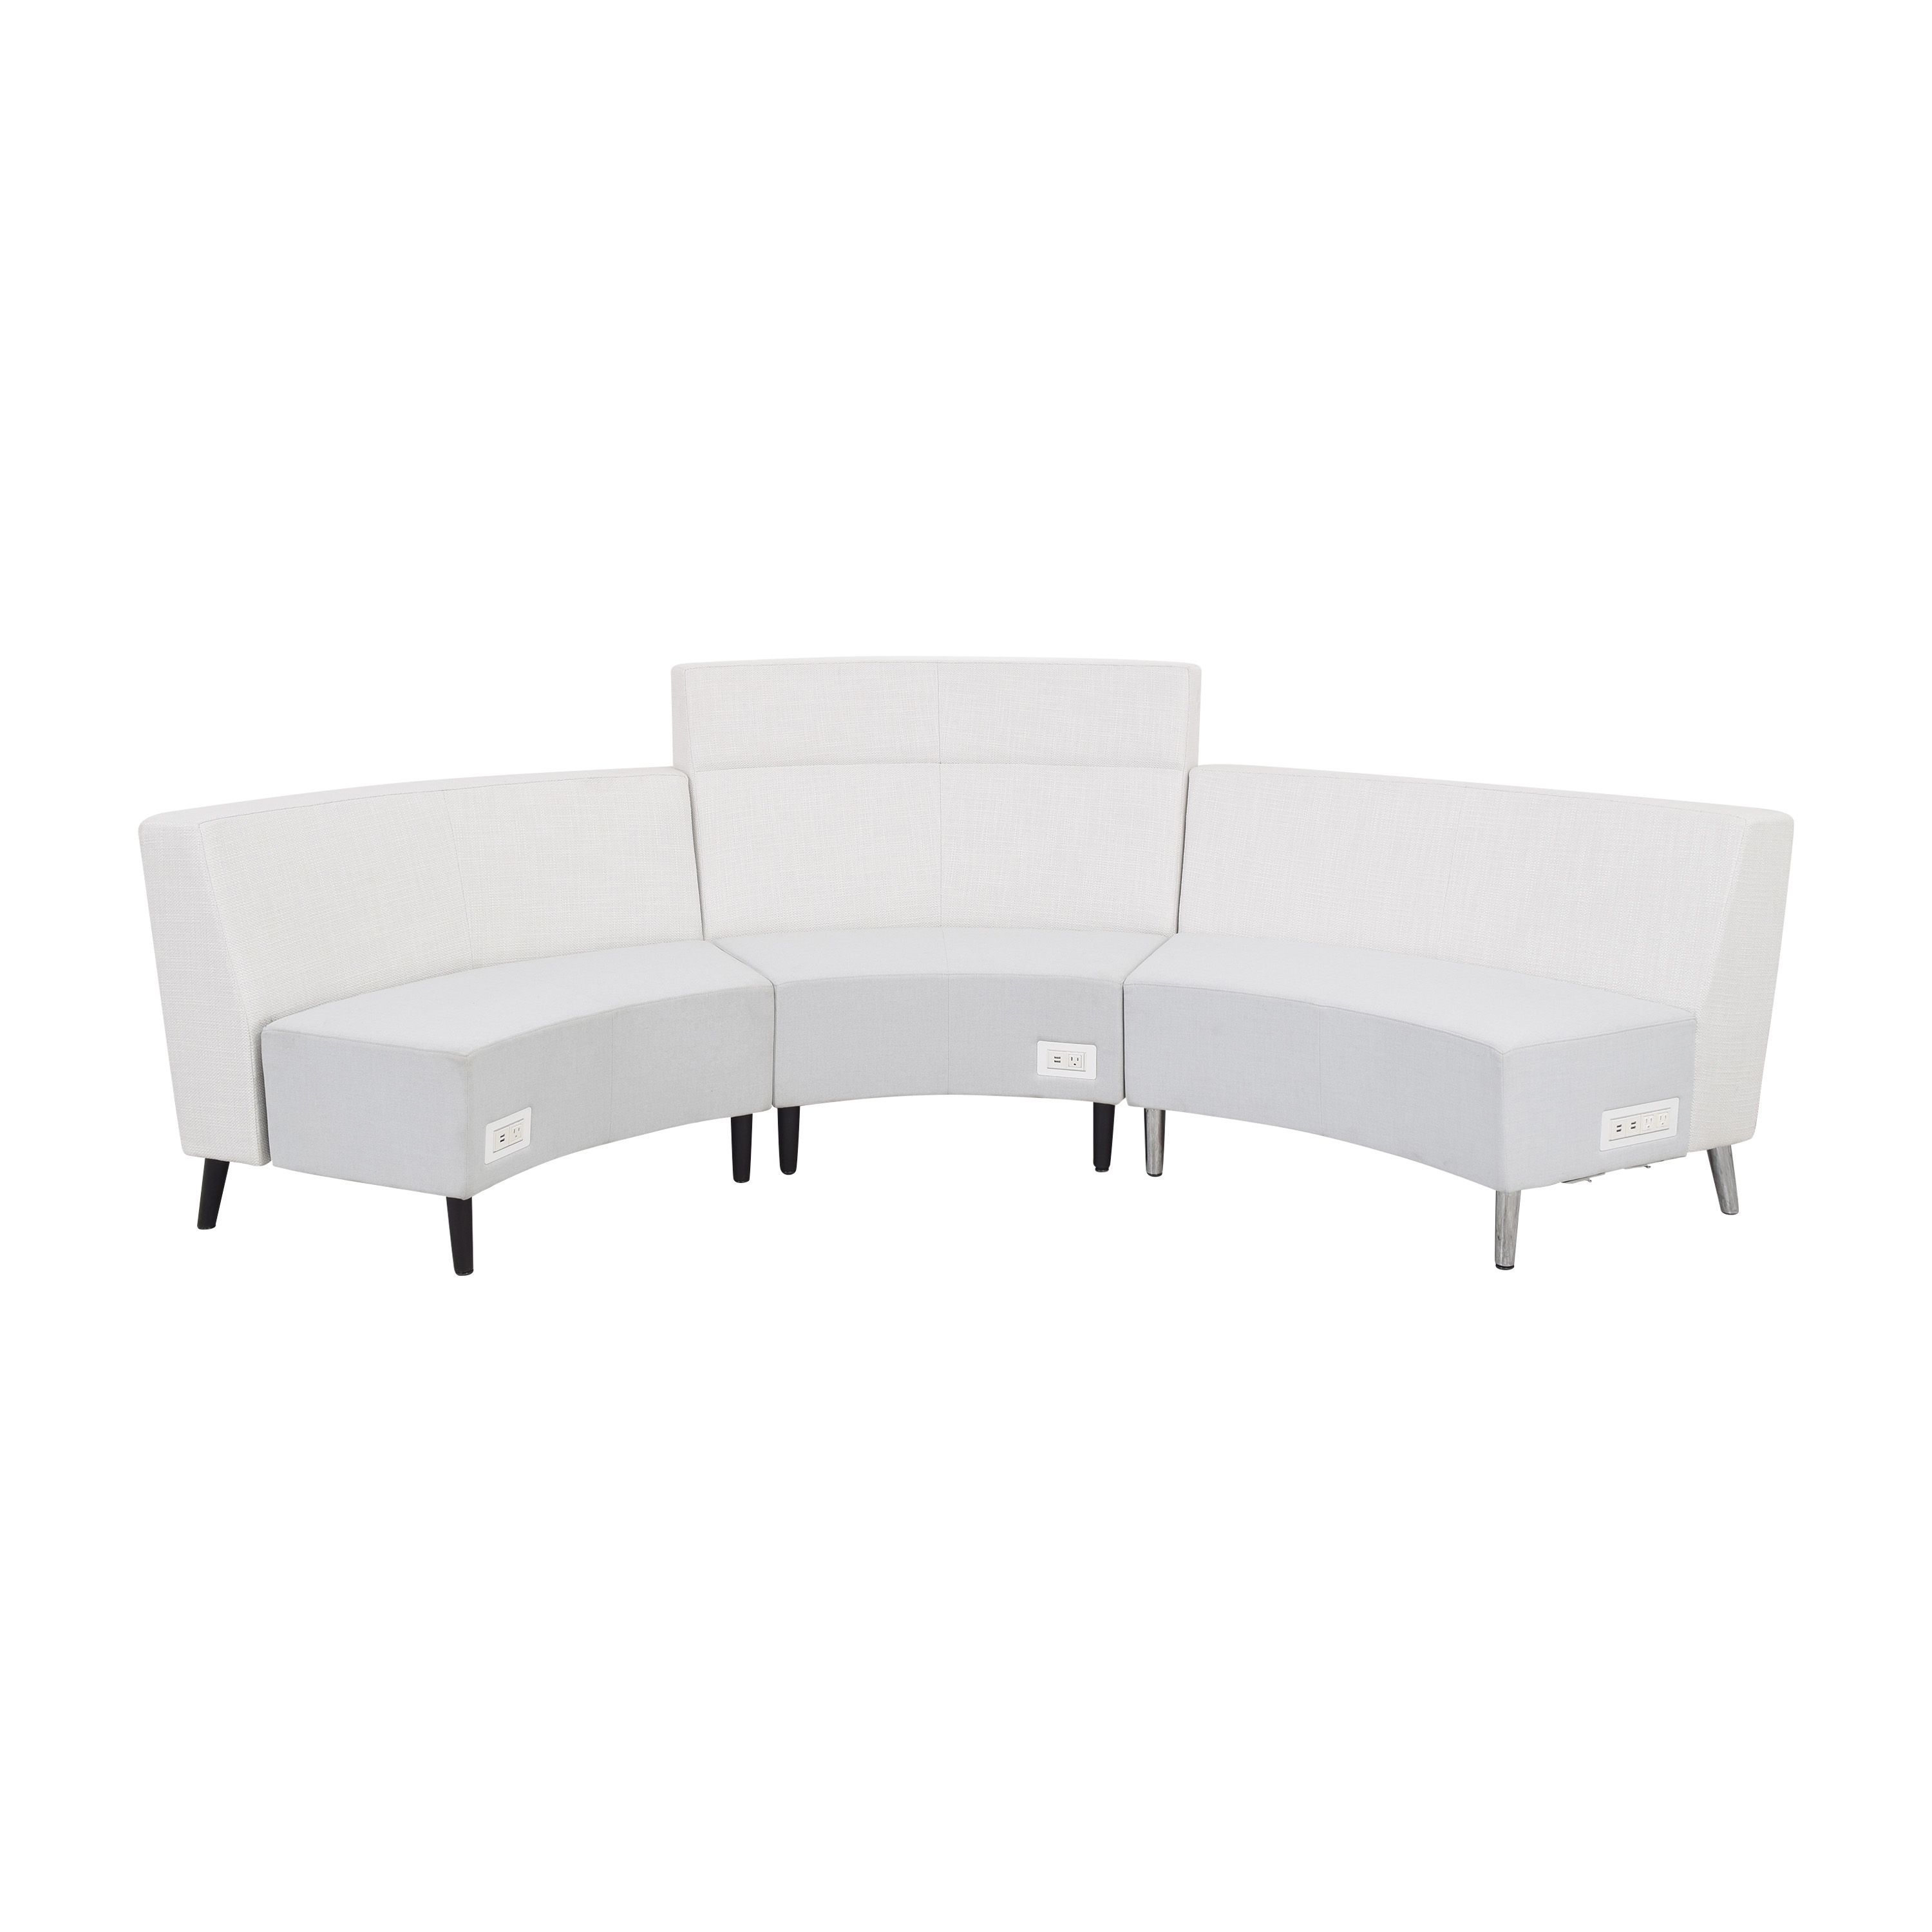 buy Global Furniture Group River Sectional Sofa with Coffee Table Section Global Furniture Group Sectionals